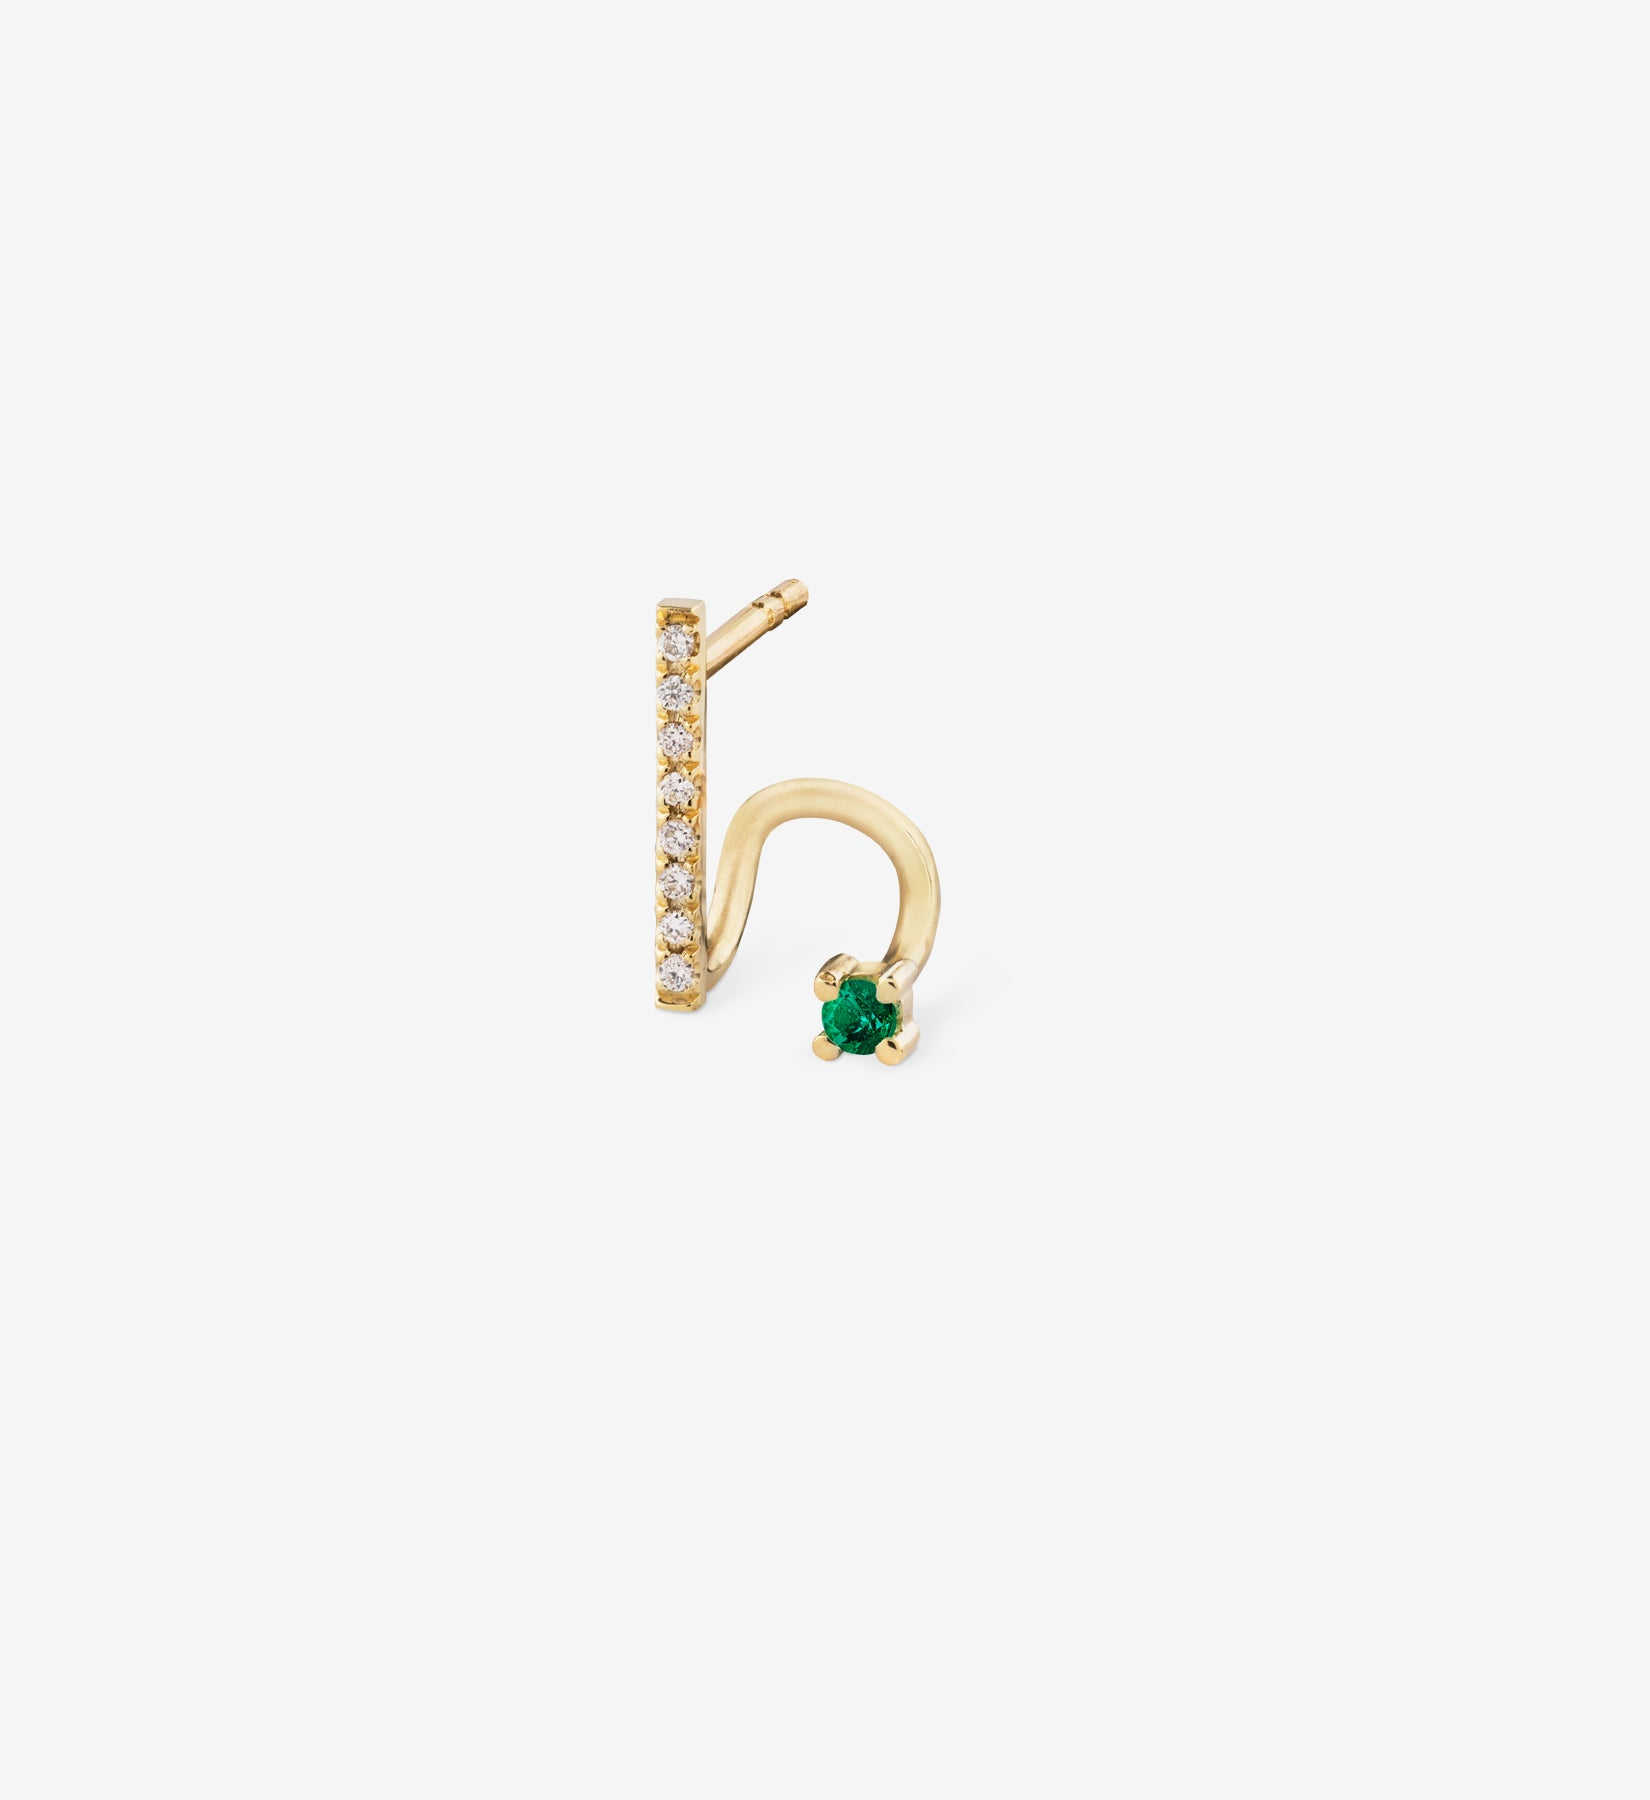 OUVERTURE, Fine jewelry, 14K gold, diamonds, golden ring, diamond ring, golden earring, diamond earring. Handcrafted jewelry. Designed in Berlin. Honestly priced. Demifine. Earparty. Stacking rings. Diamond Huggie, Huggie earring, golden huggie earring diamond line earring, emerald earring, emerald diamond spiral earring